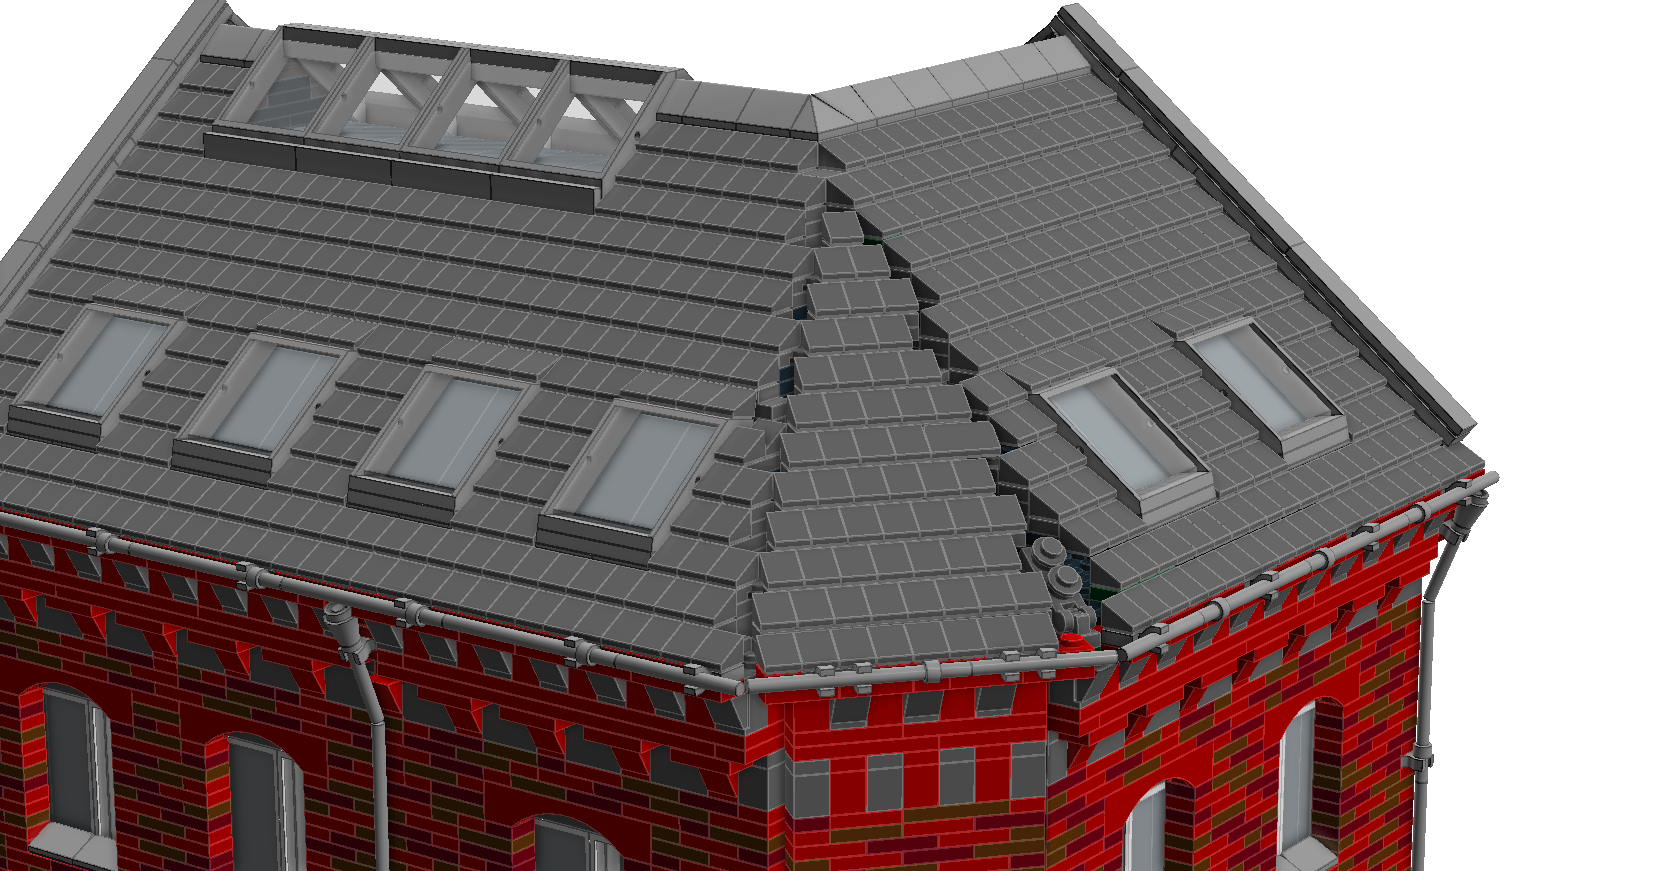 Help On Connecting Roof Tiles At Weird Angle Brickset Forum